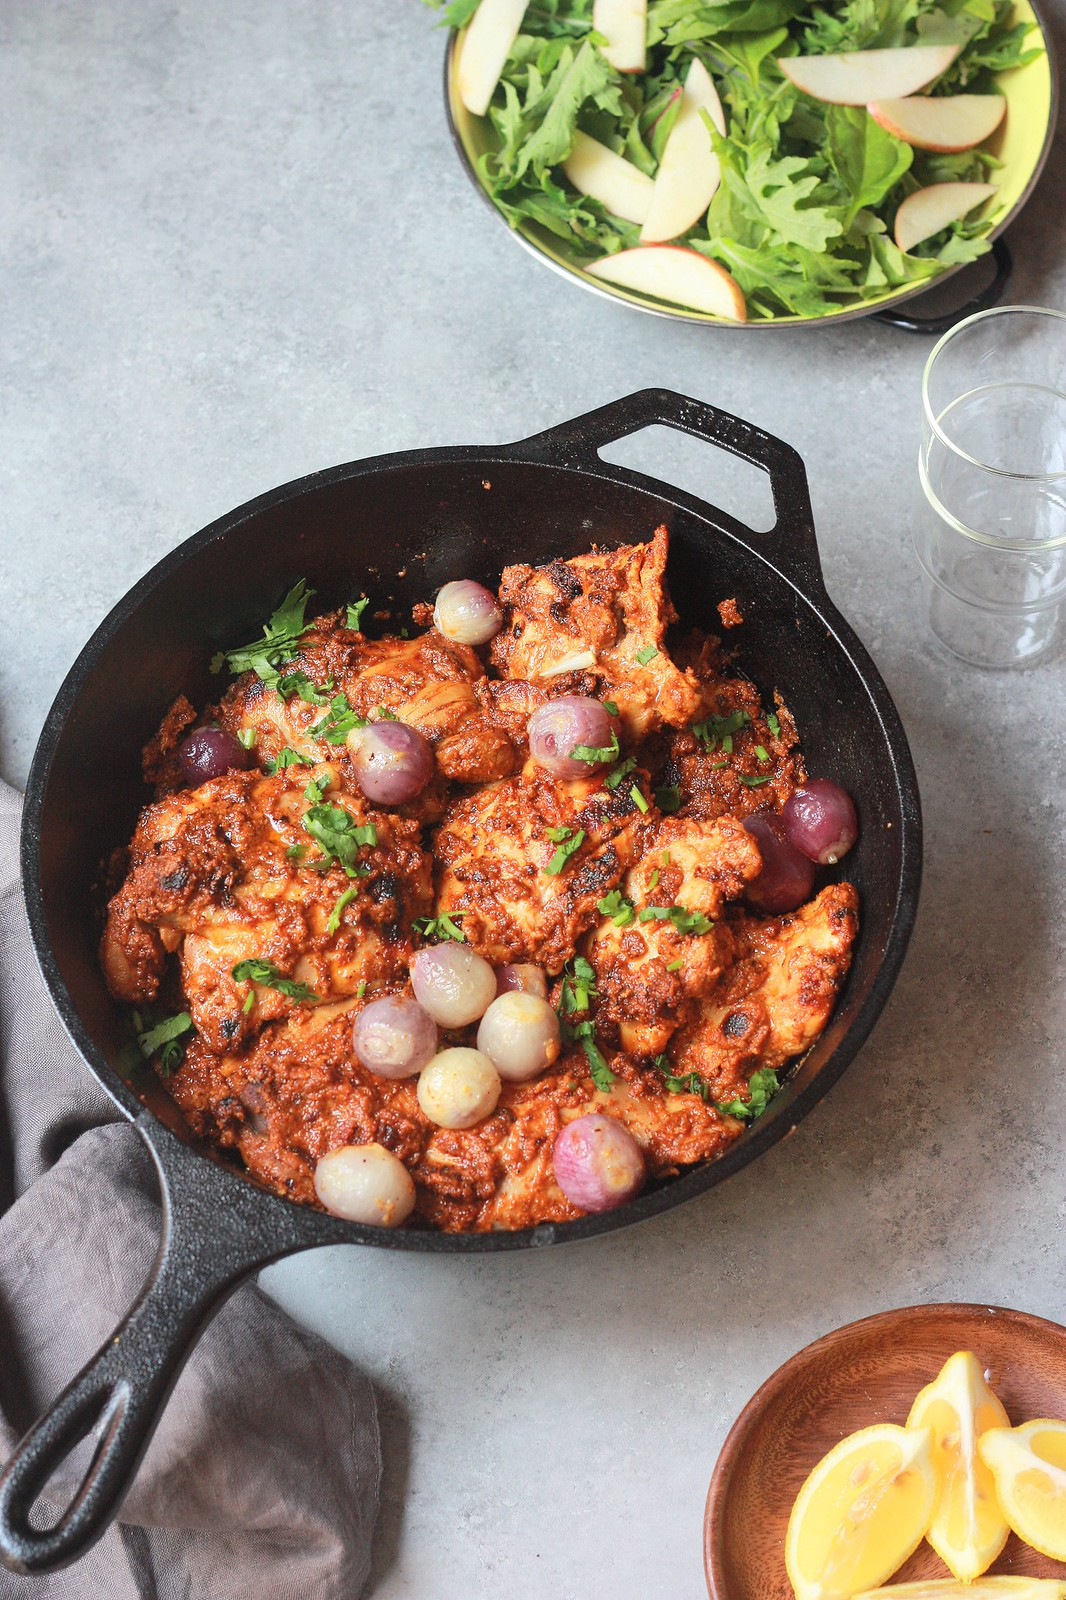 Grilled/Baked Chicken in a Tamarind Masala Sauce